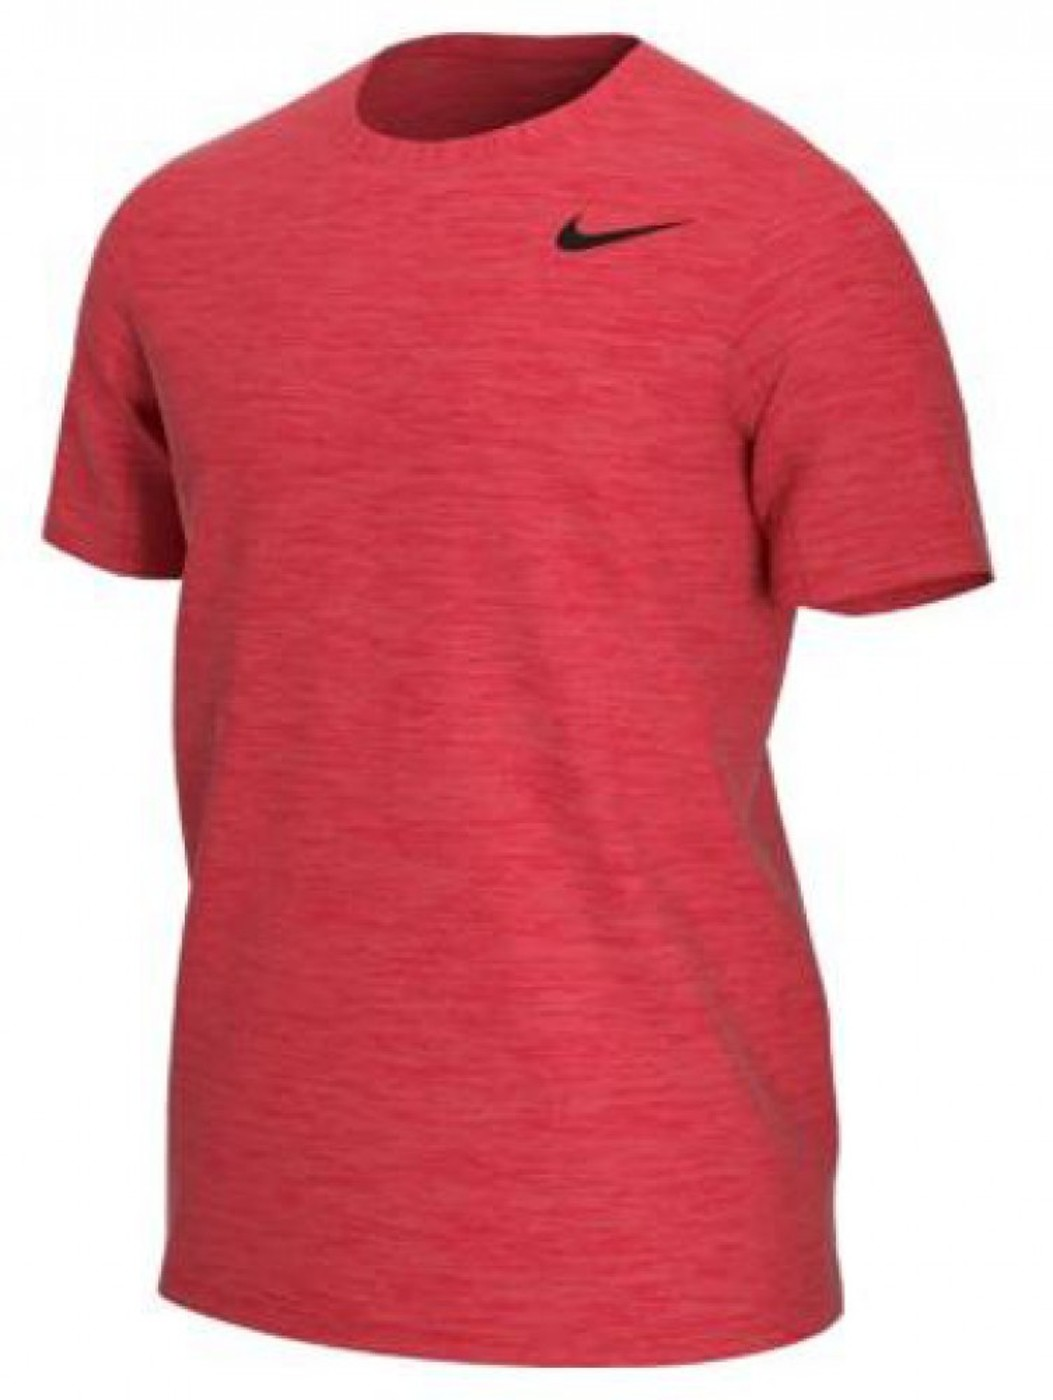 Nike Dri-FIT Superset Sh - Herren